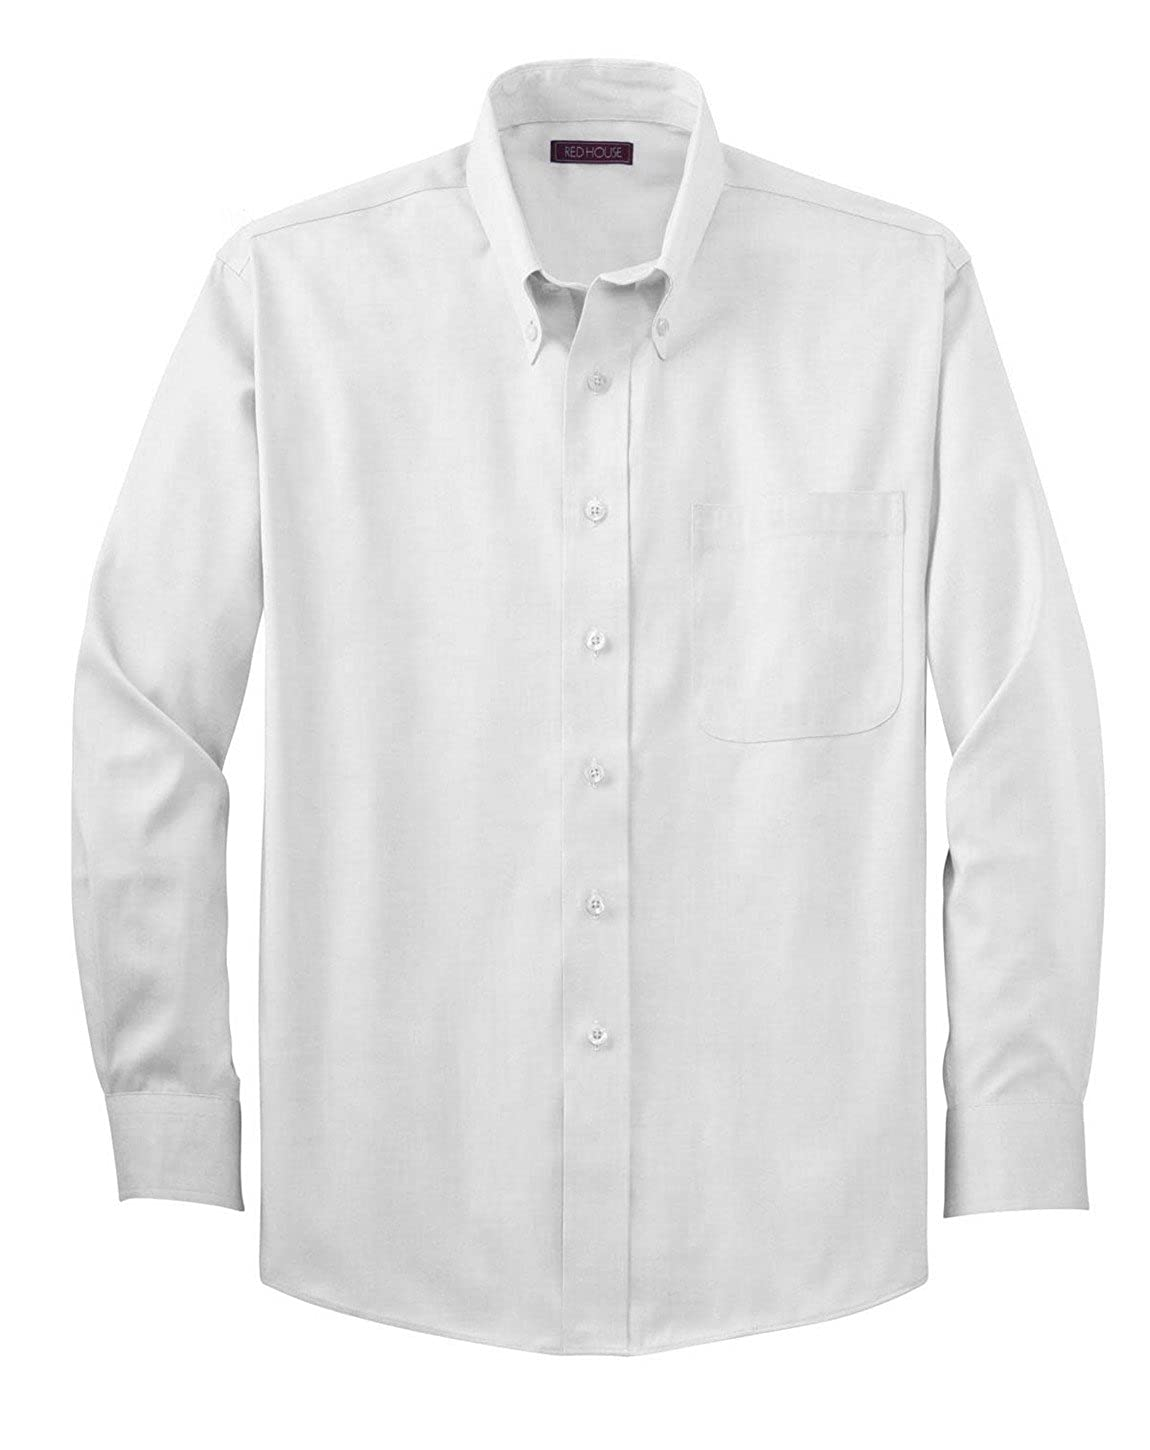 40b2cb48ced Red House RH24 Non-Iron Pinpoint Oxford. - White - L at Amazon Men s  Clothing store  Dress Shirts